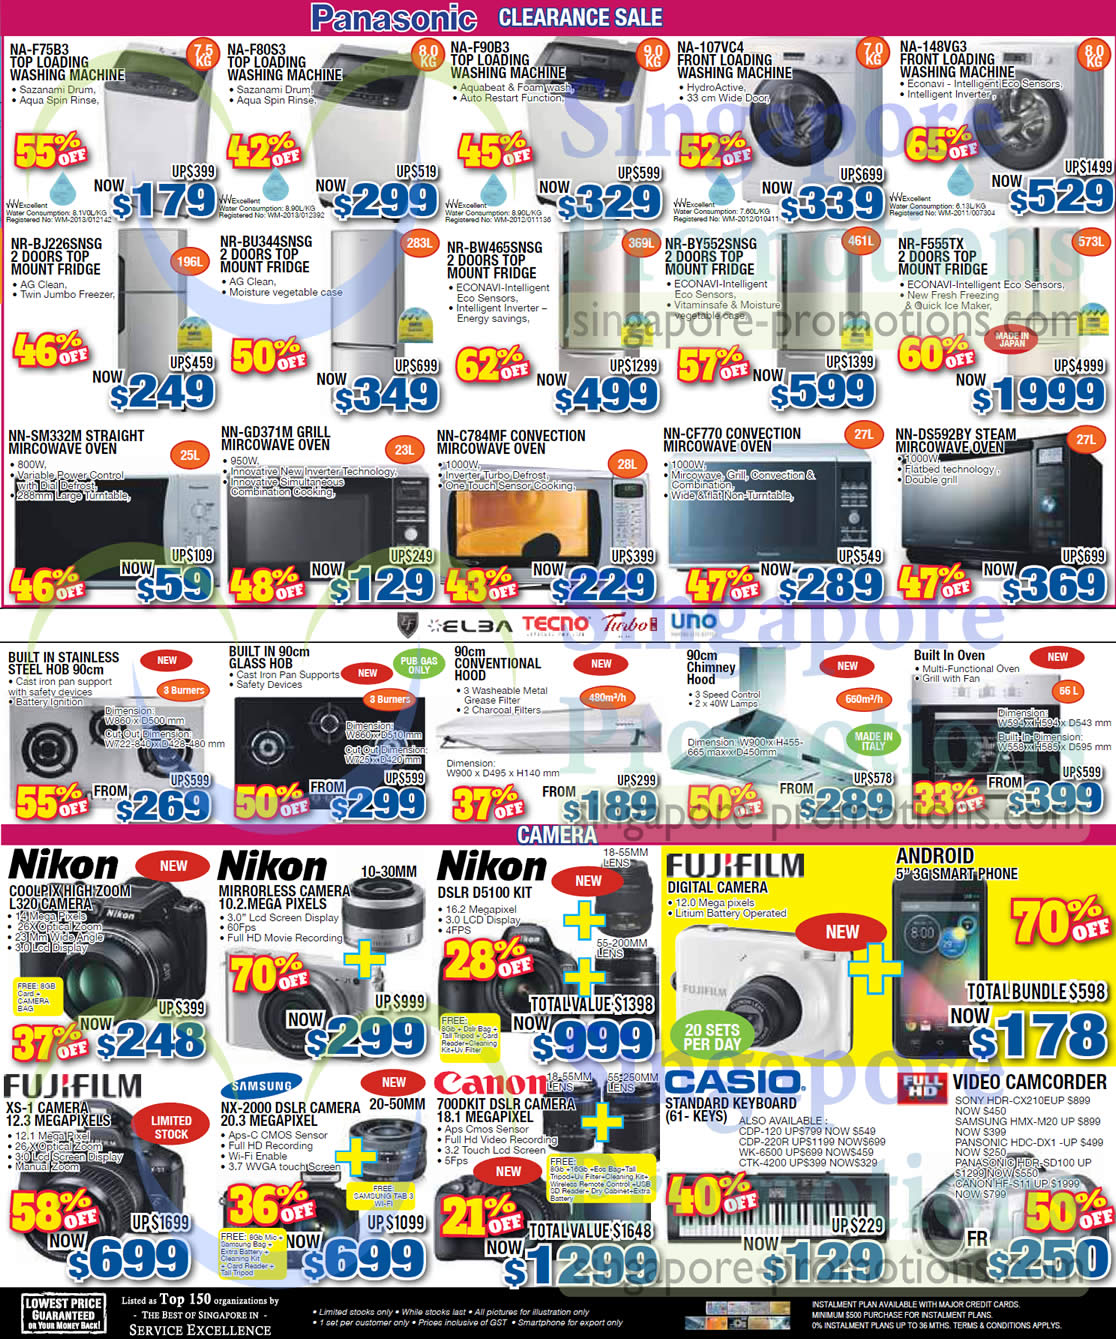 Camera List Of Sony Dslr Camera With Price washers fridges dslrs digital cameras video camcorders keyboards panasonic nikon fujifilm samsung casio canon sony